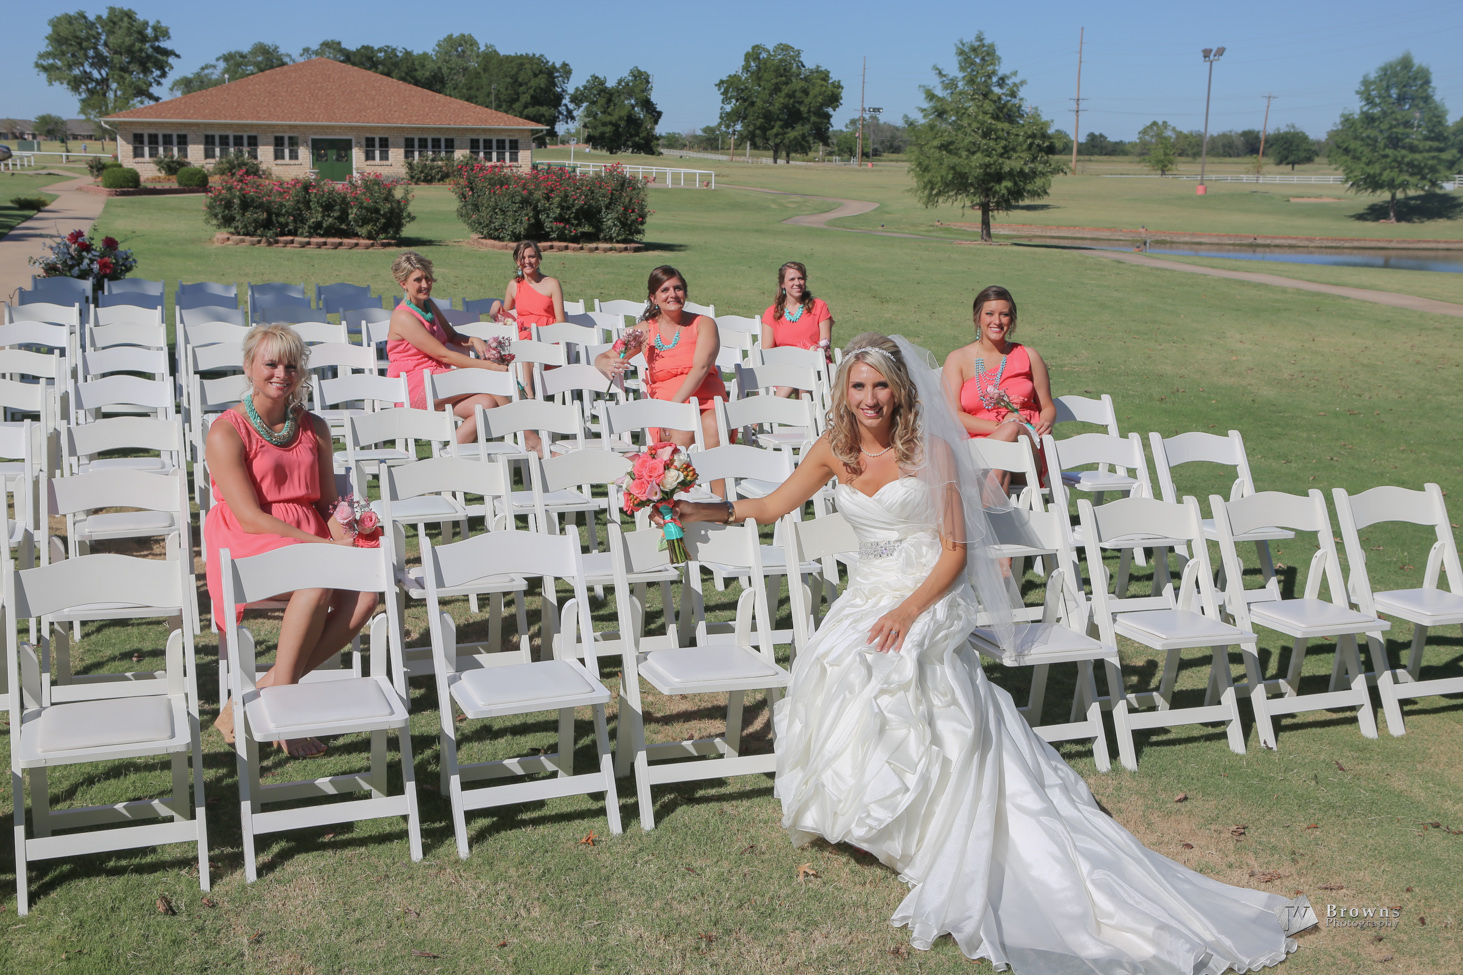 WEDDINGSTILLWATEROK-40.jpg